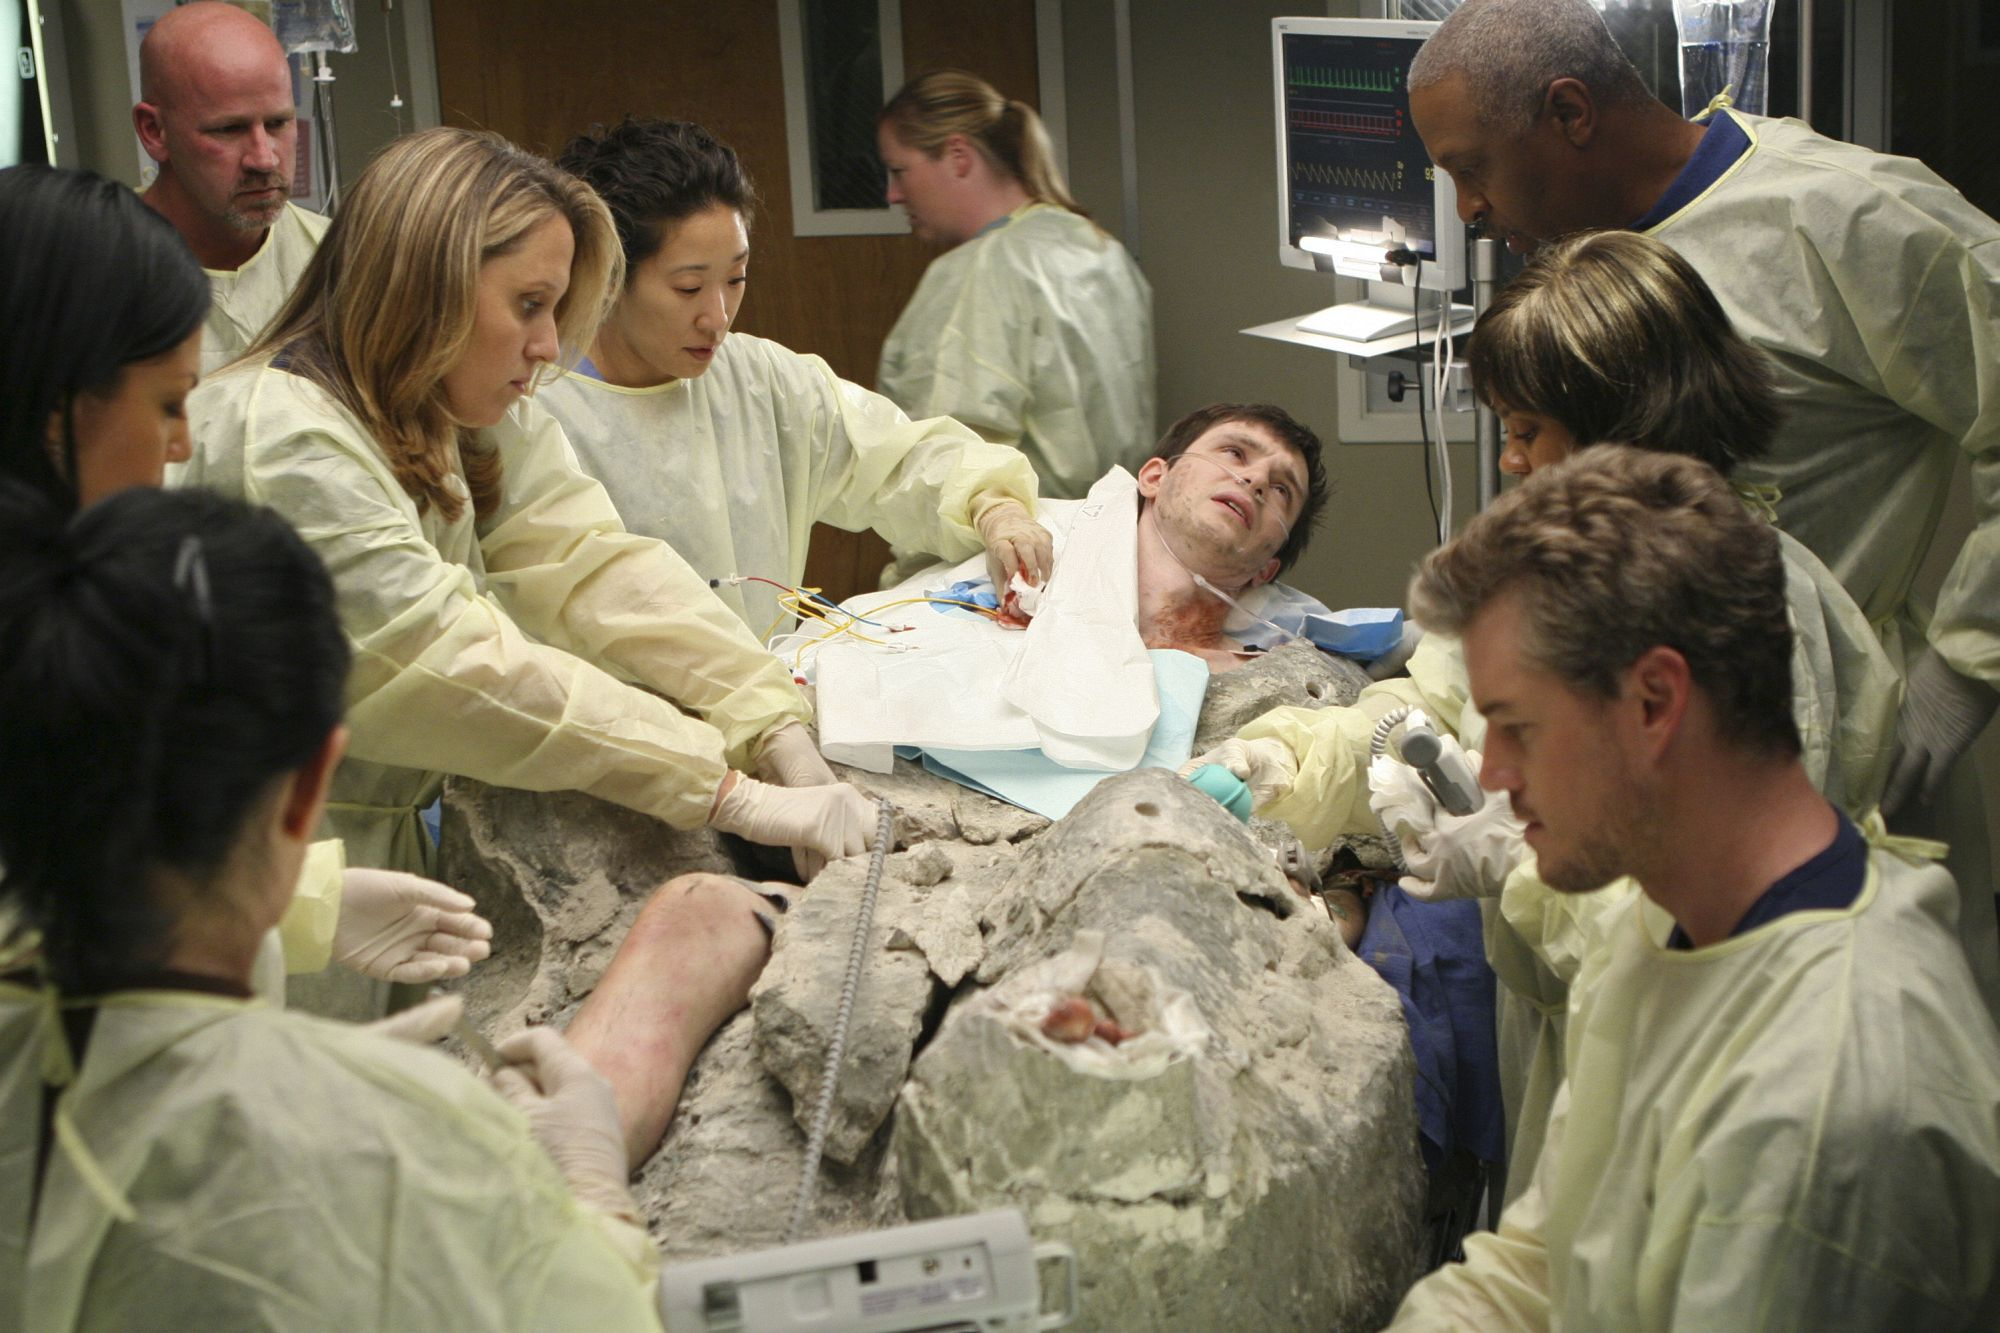 12 Best Episodes Of Greys Anatomy You Need To Rewatch Her Campus